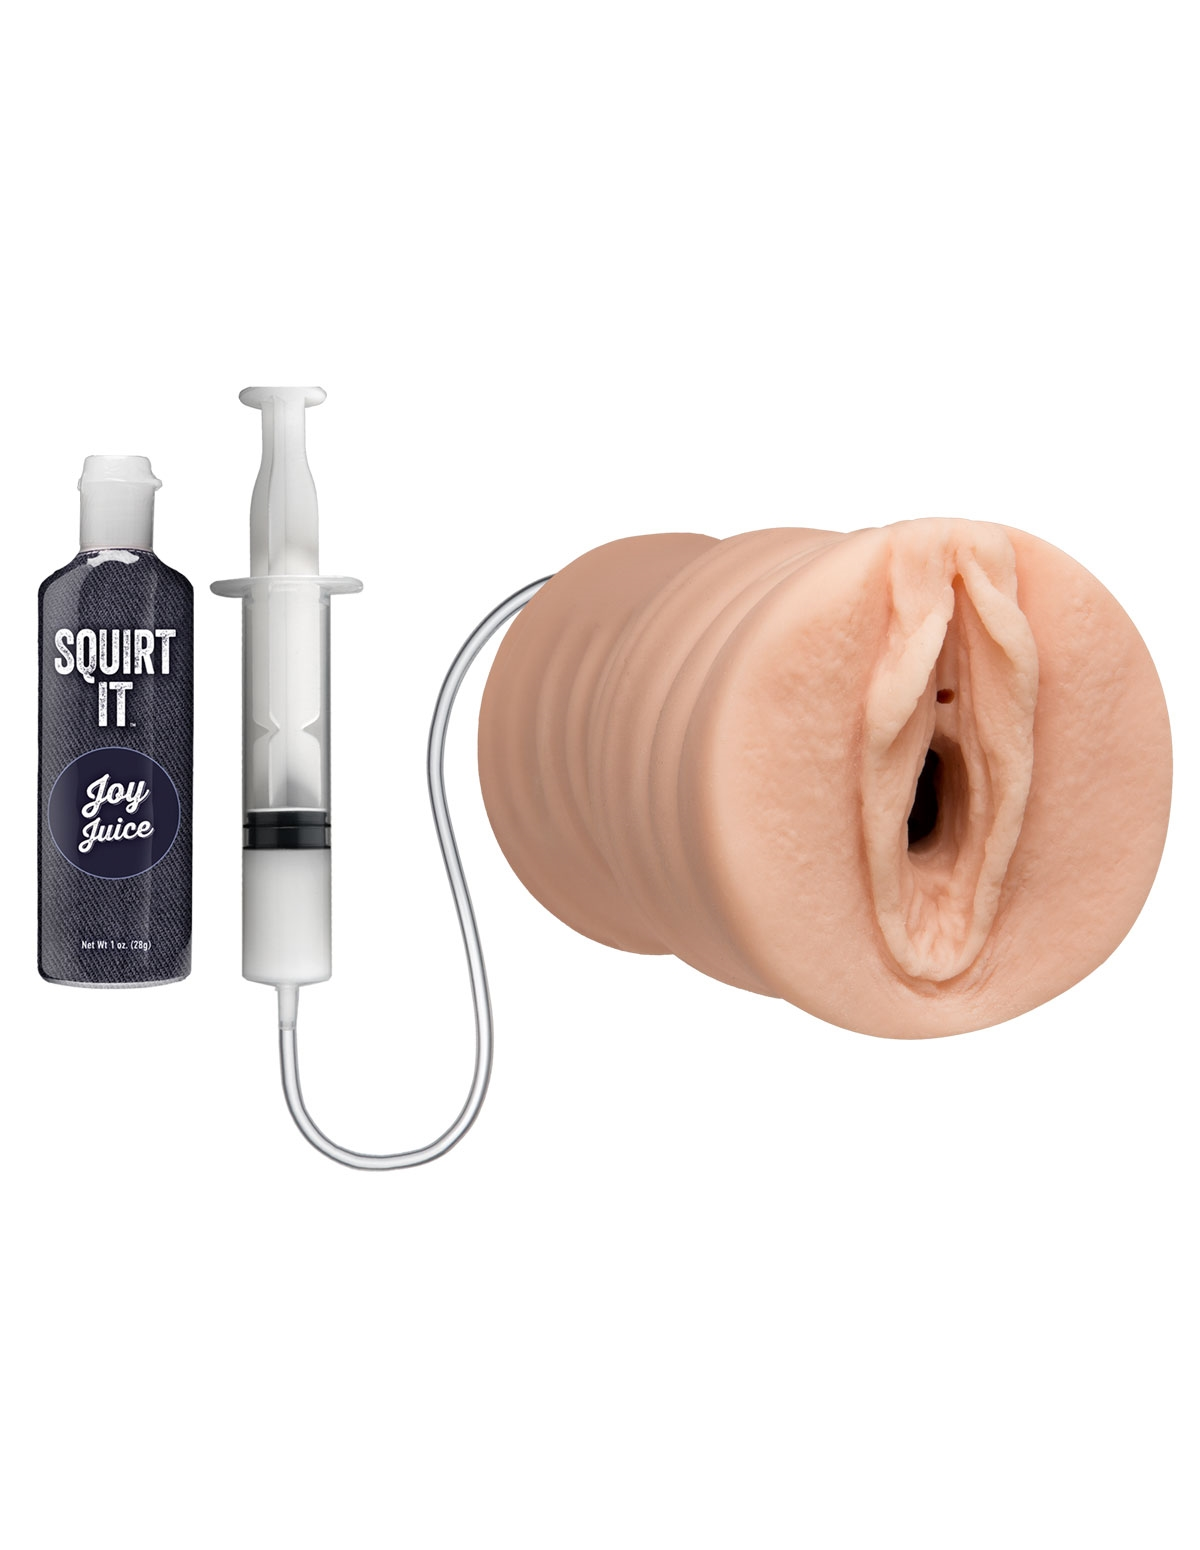 Squirt It: Squirting Pussy Stroker - Light Skin